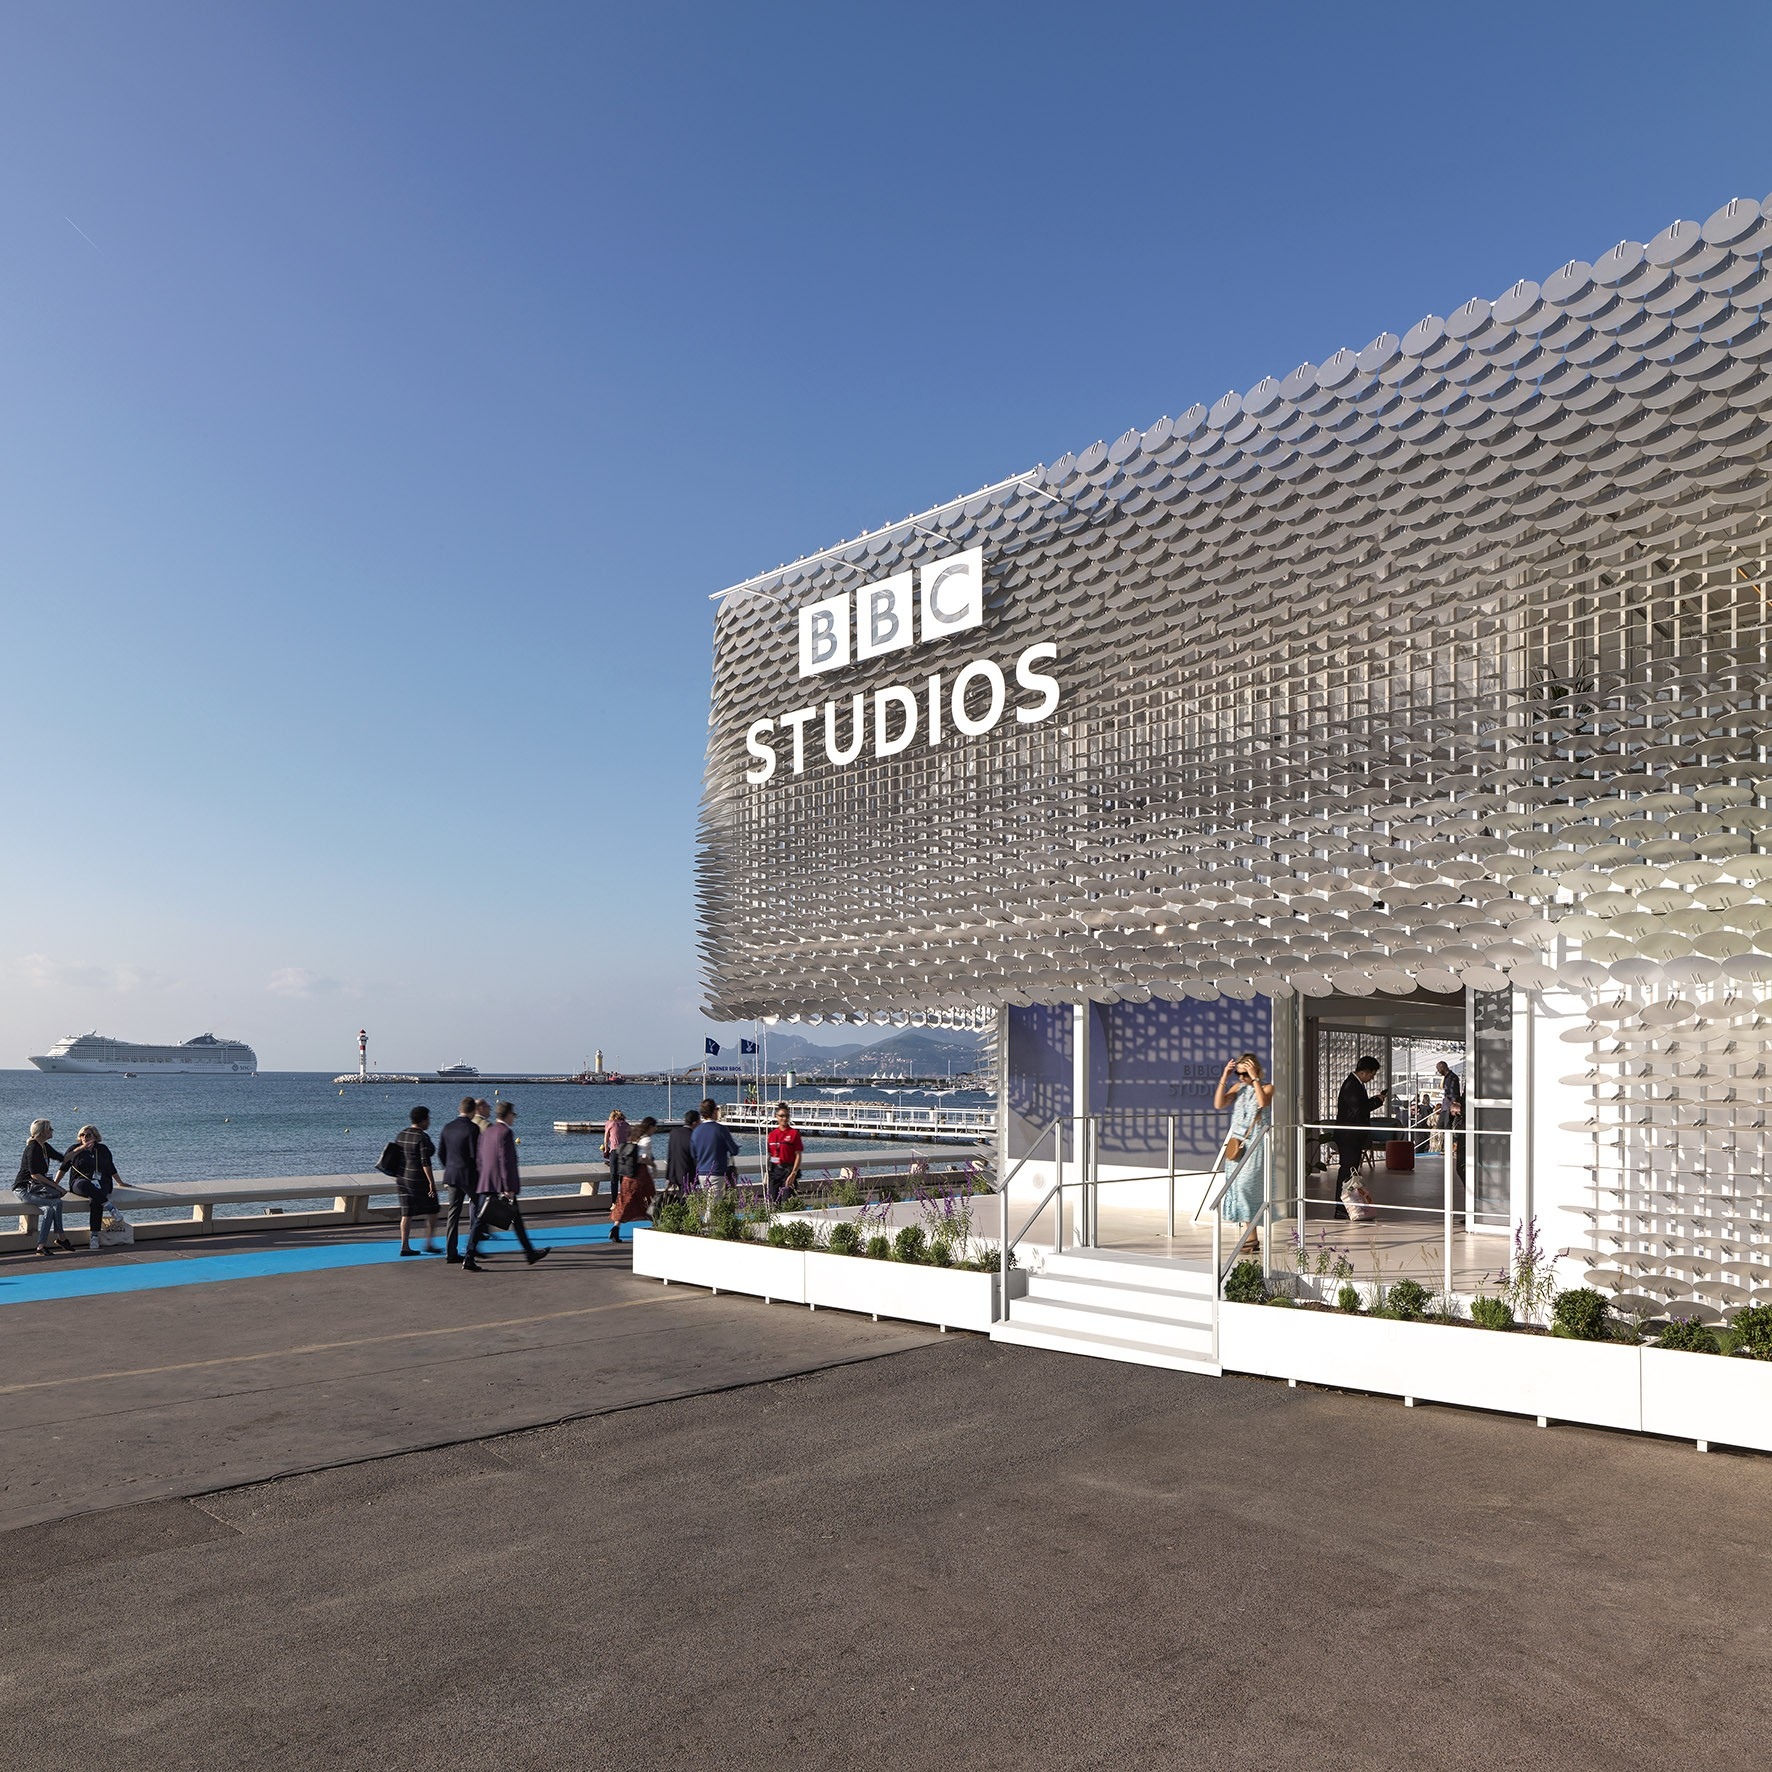 Front view of the BBC Pavilion at MIPCOM 2019, Cannes designed by Universal